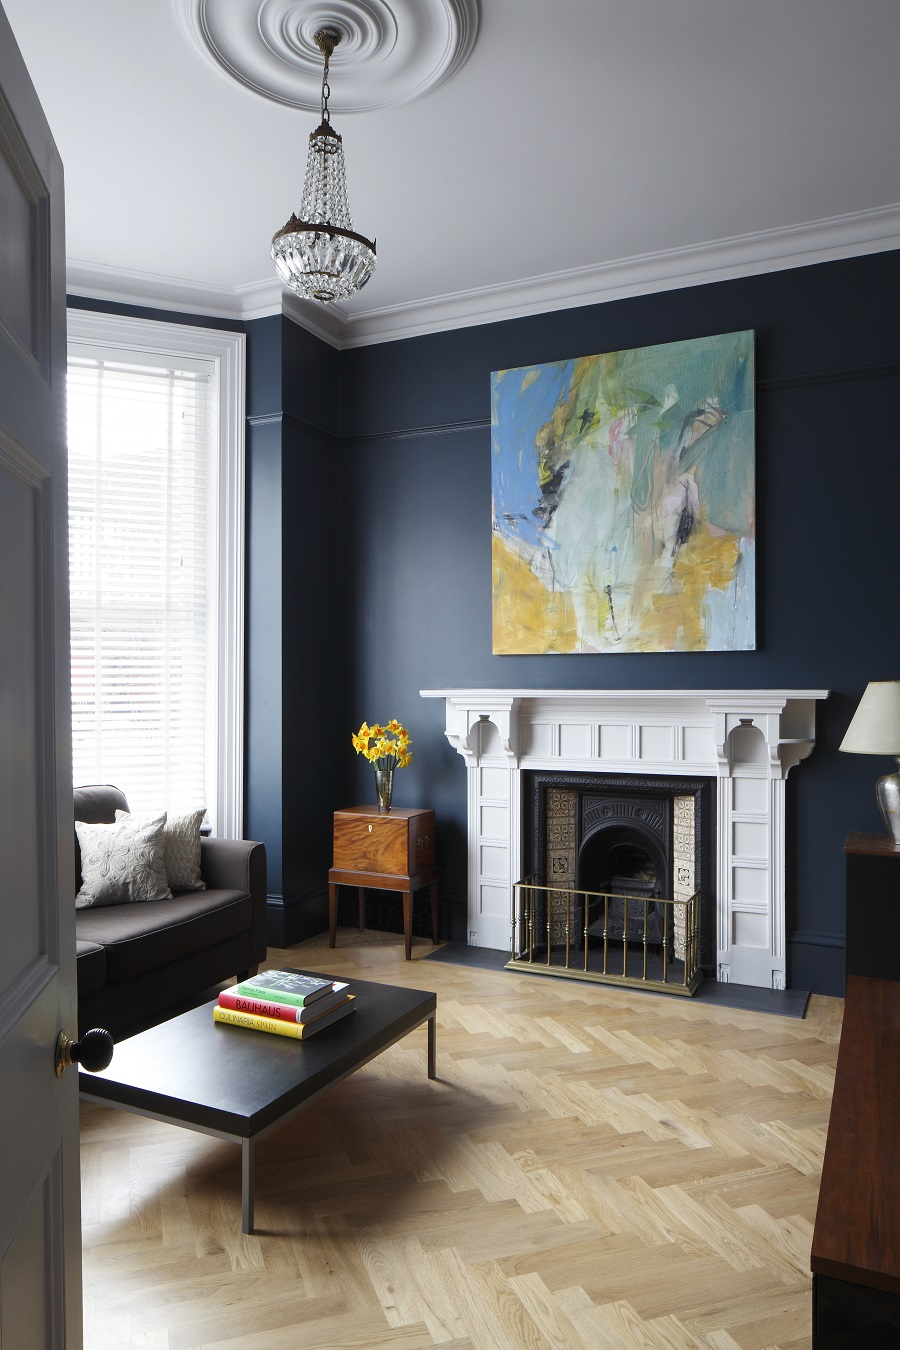 A Renovated Victorian Villa That Was a Labour of Love